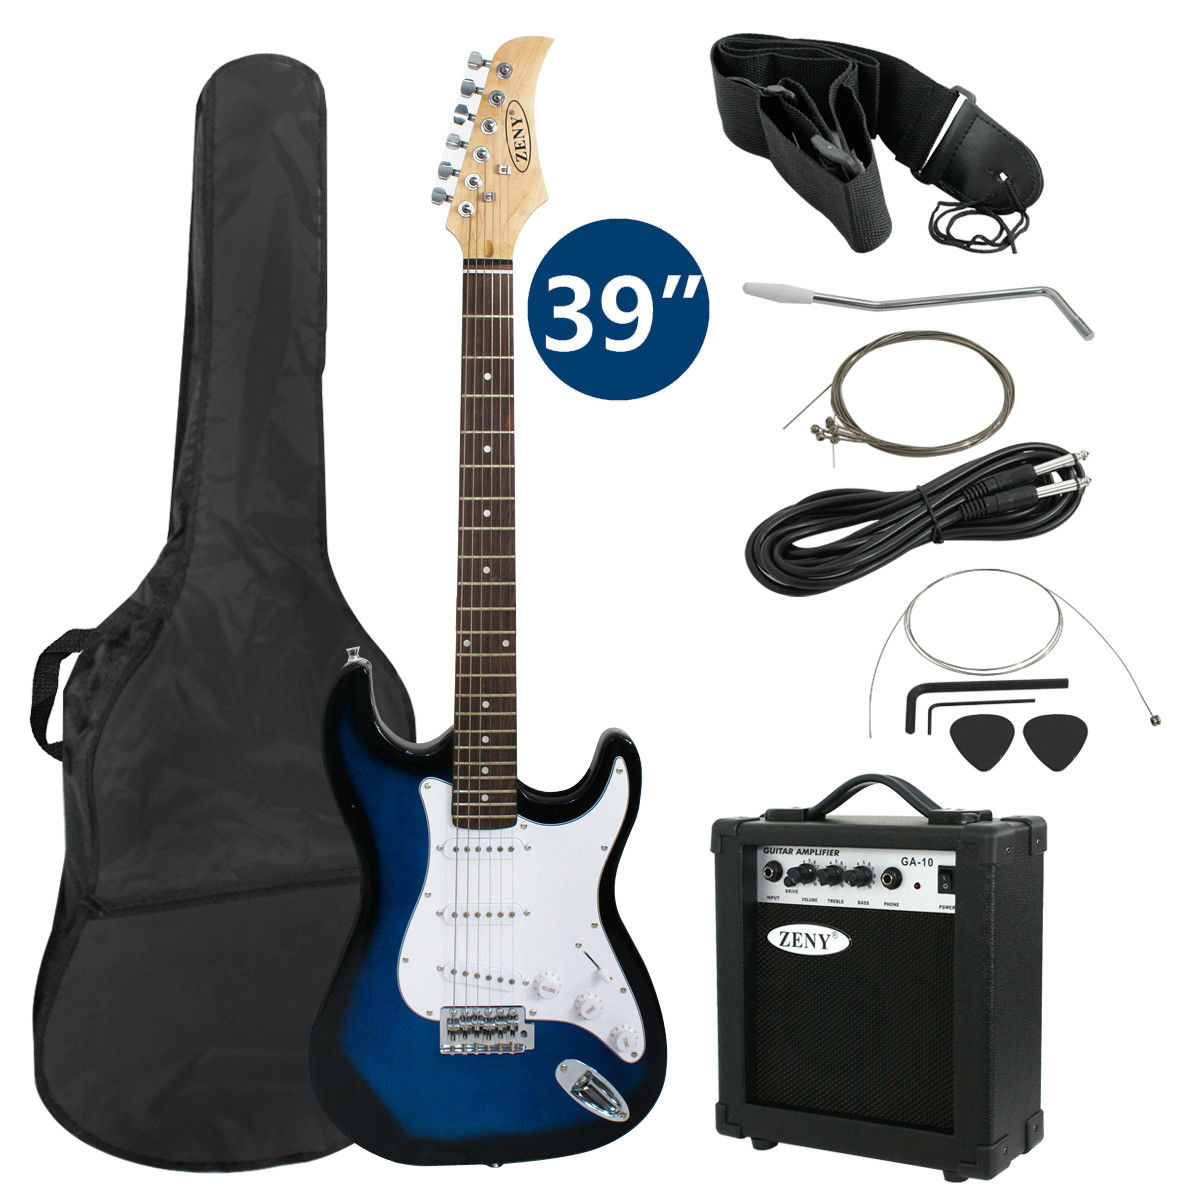 "Zeny 39"" Full Size Electric Guitar with Amp, Case and Accessories Pack Beginner Starter Package, Blue"